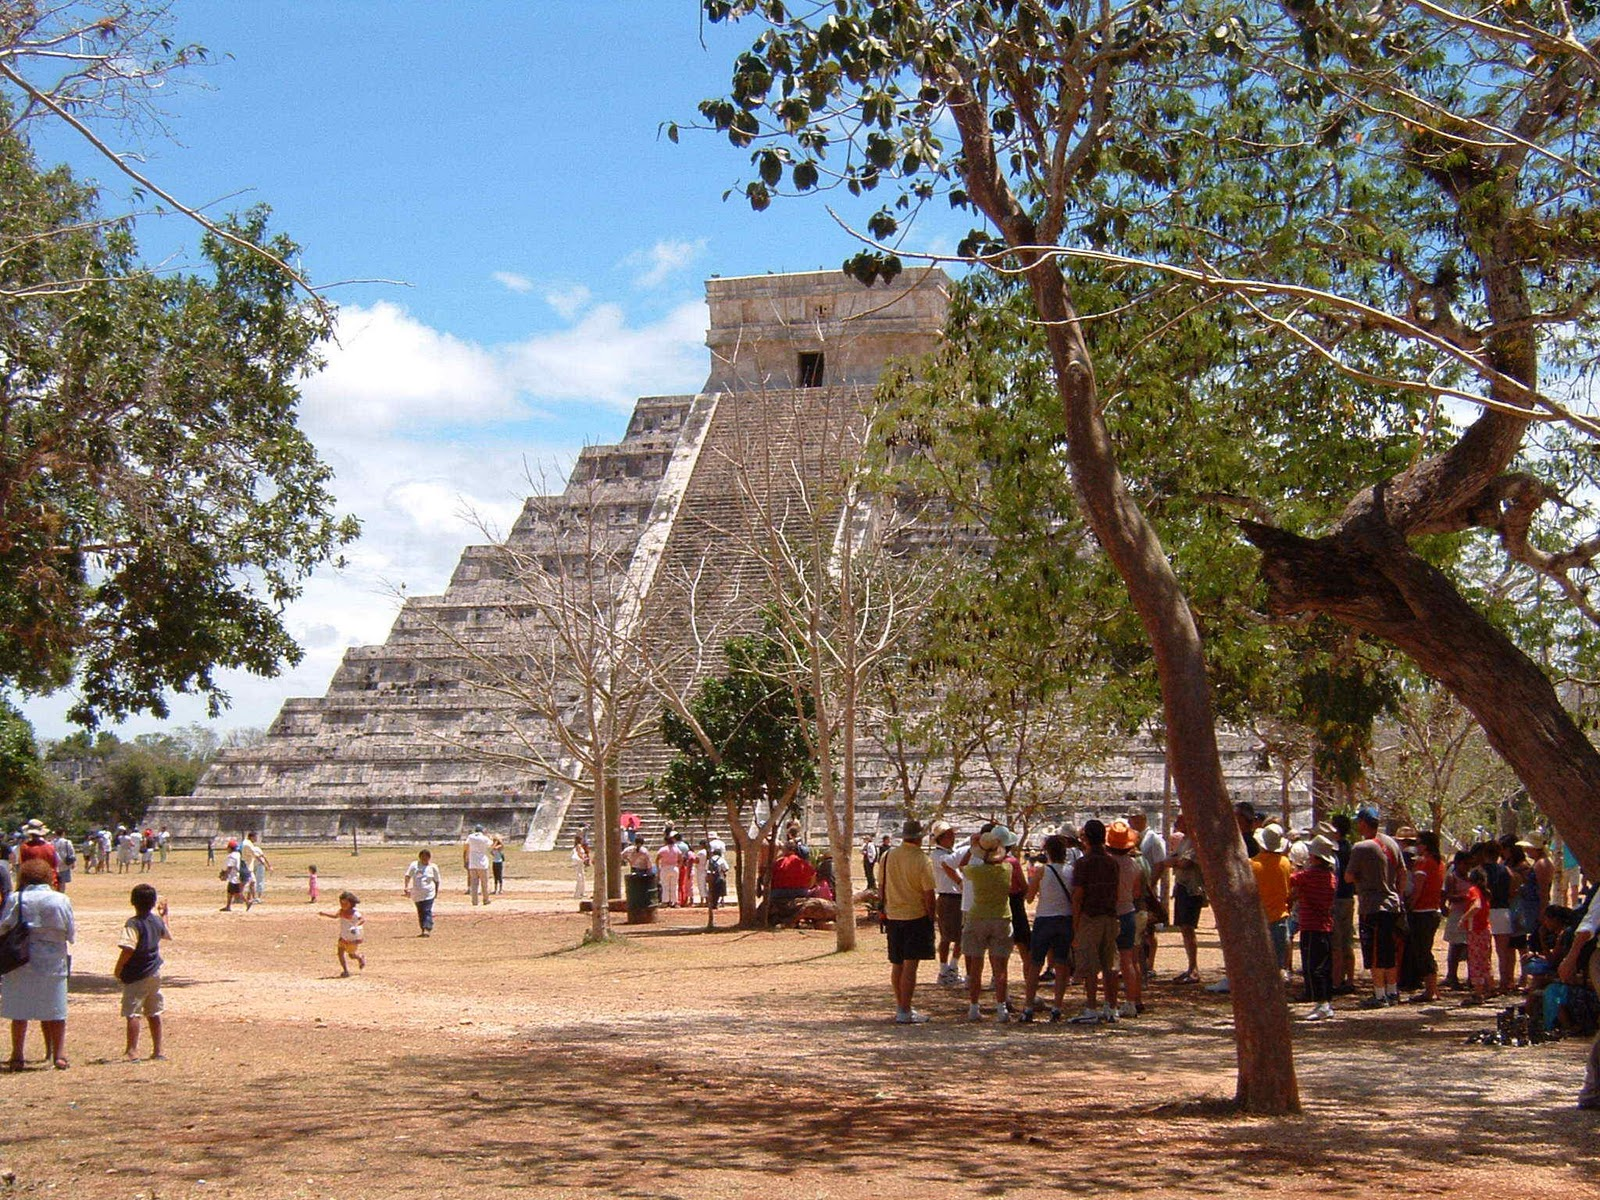 pyramid of kukulkn chichen itza mexico wallpapers - pyramid of kukulkn chichen itza mexico normal wallpapers